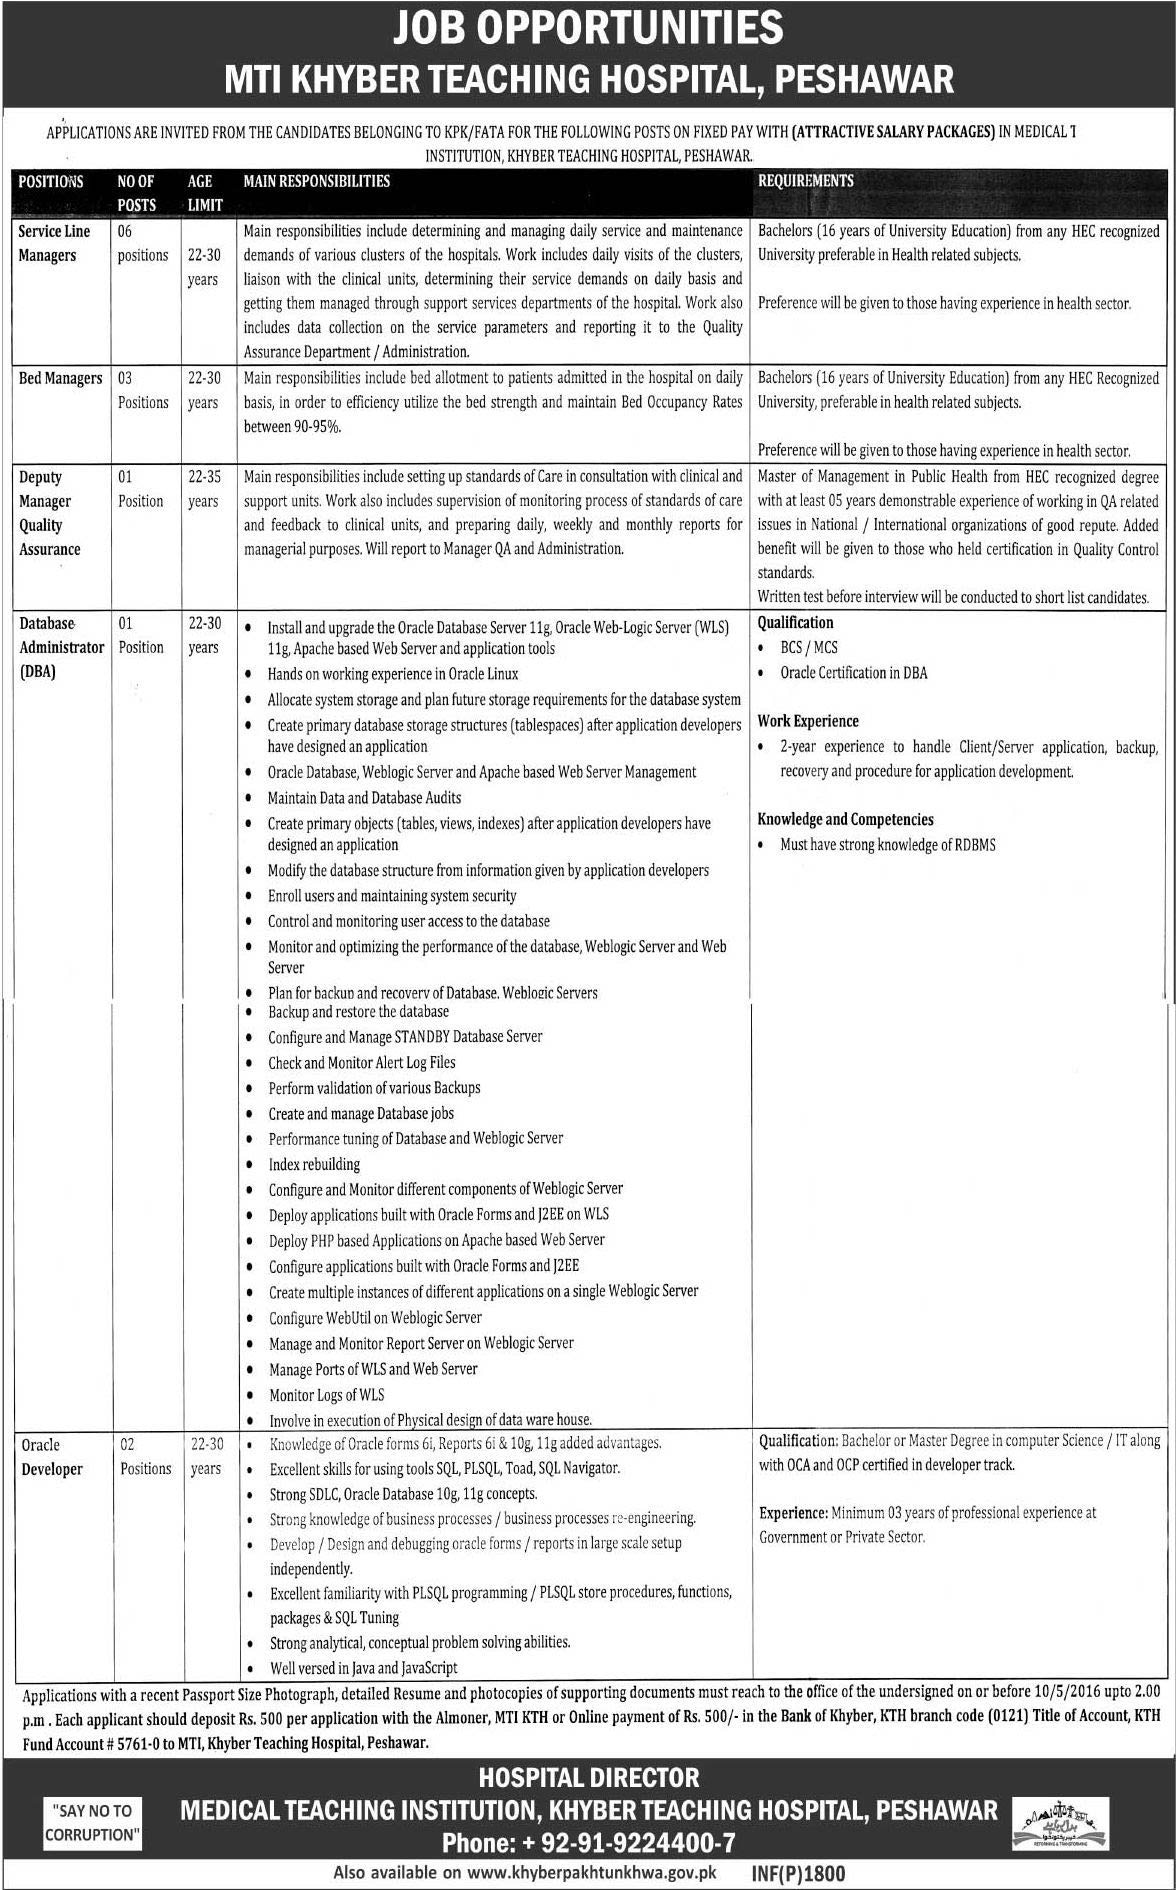 Khyber Teaching Hospital Peshawar Jobs 2016